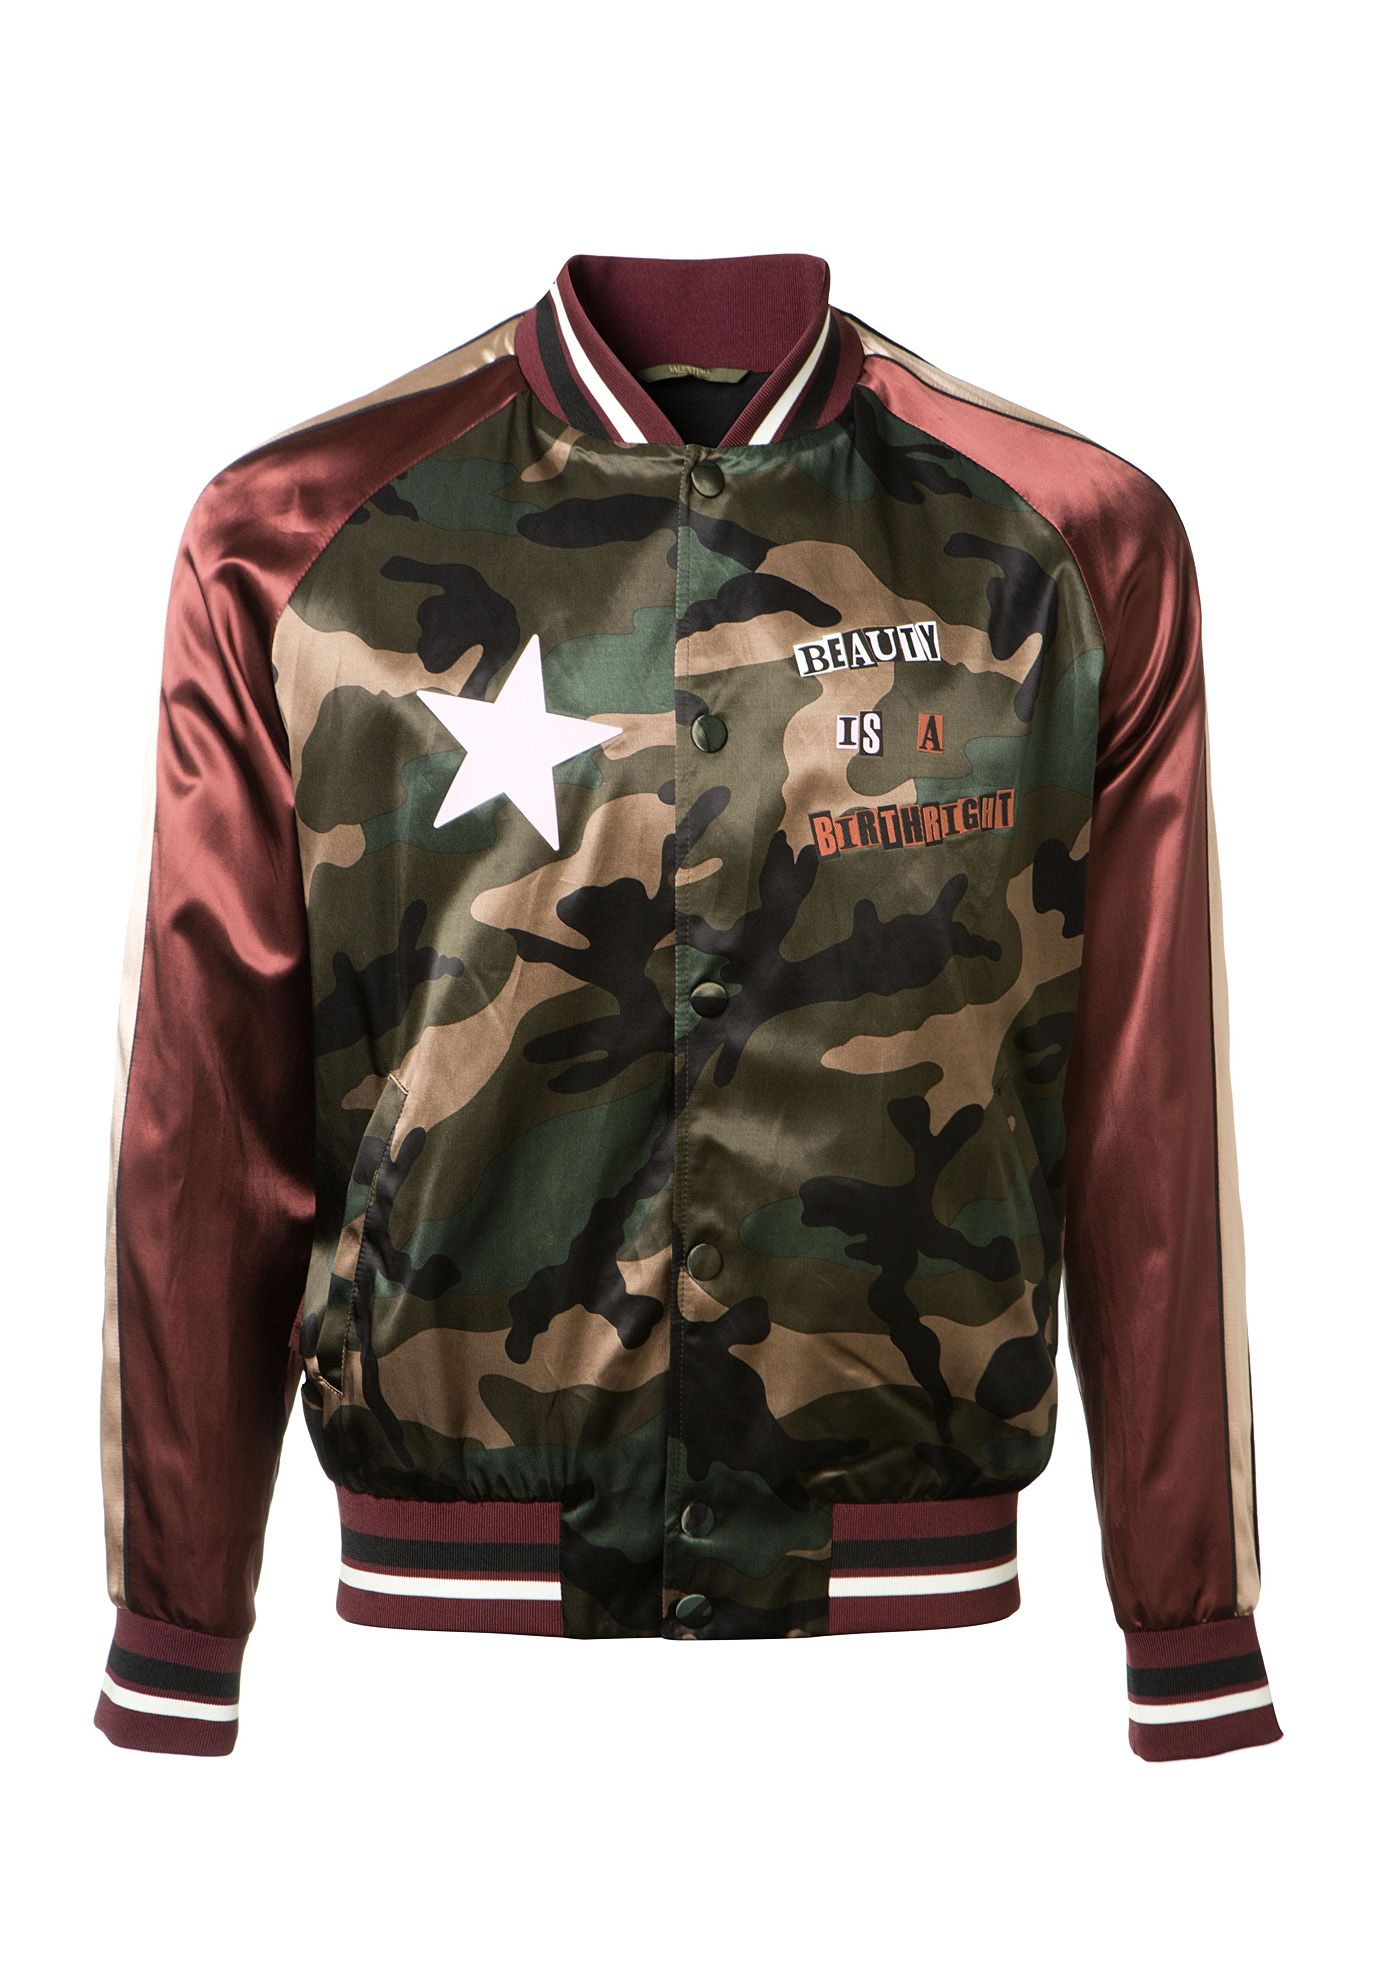 393a914c7 VALENTINO Valentino Camouflage Satin Souvenir Jacket With Patches ...